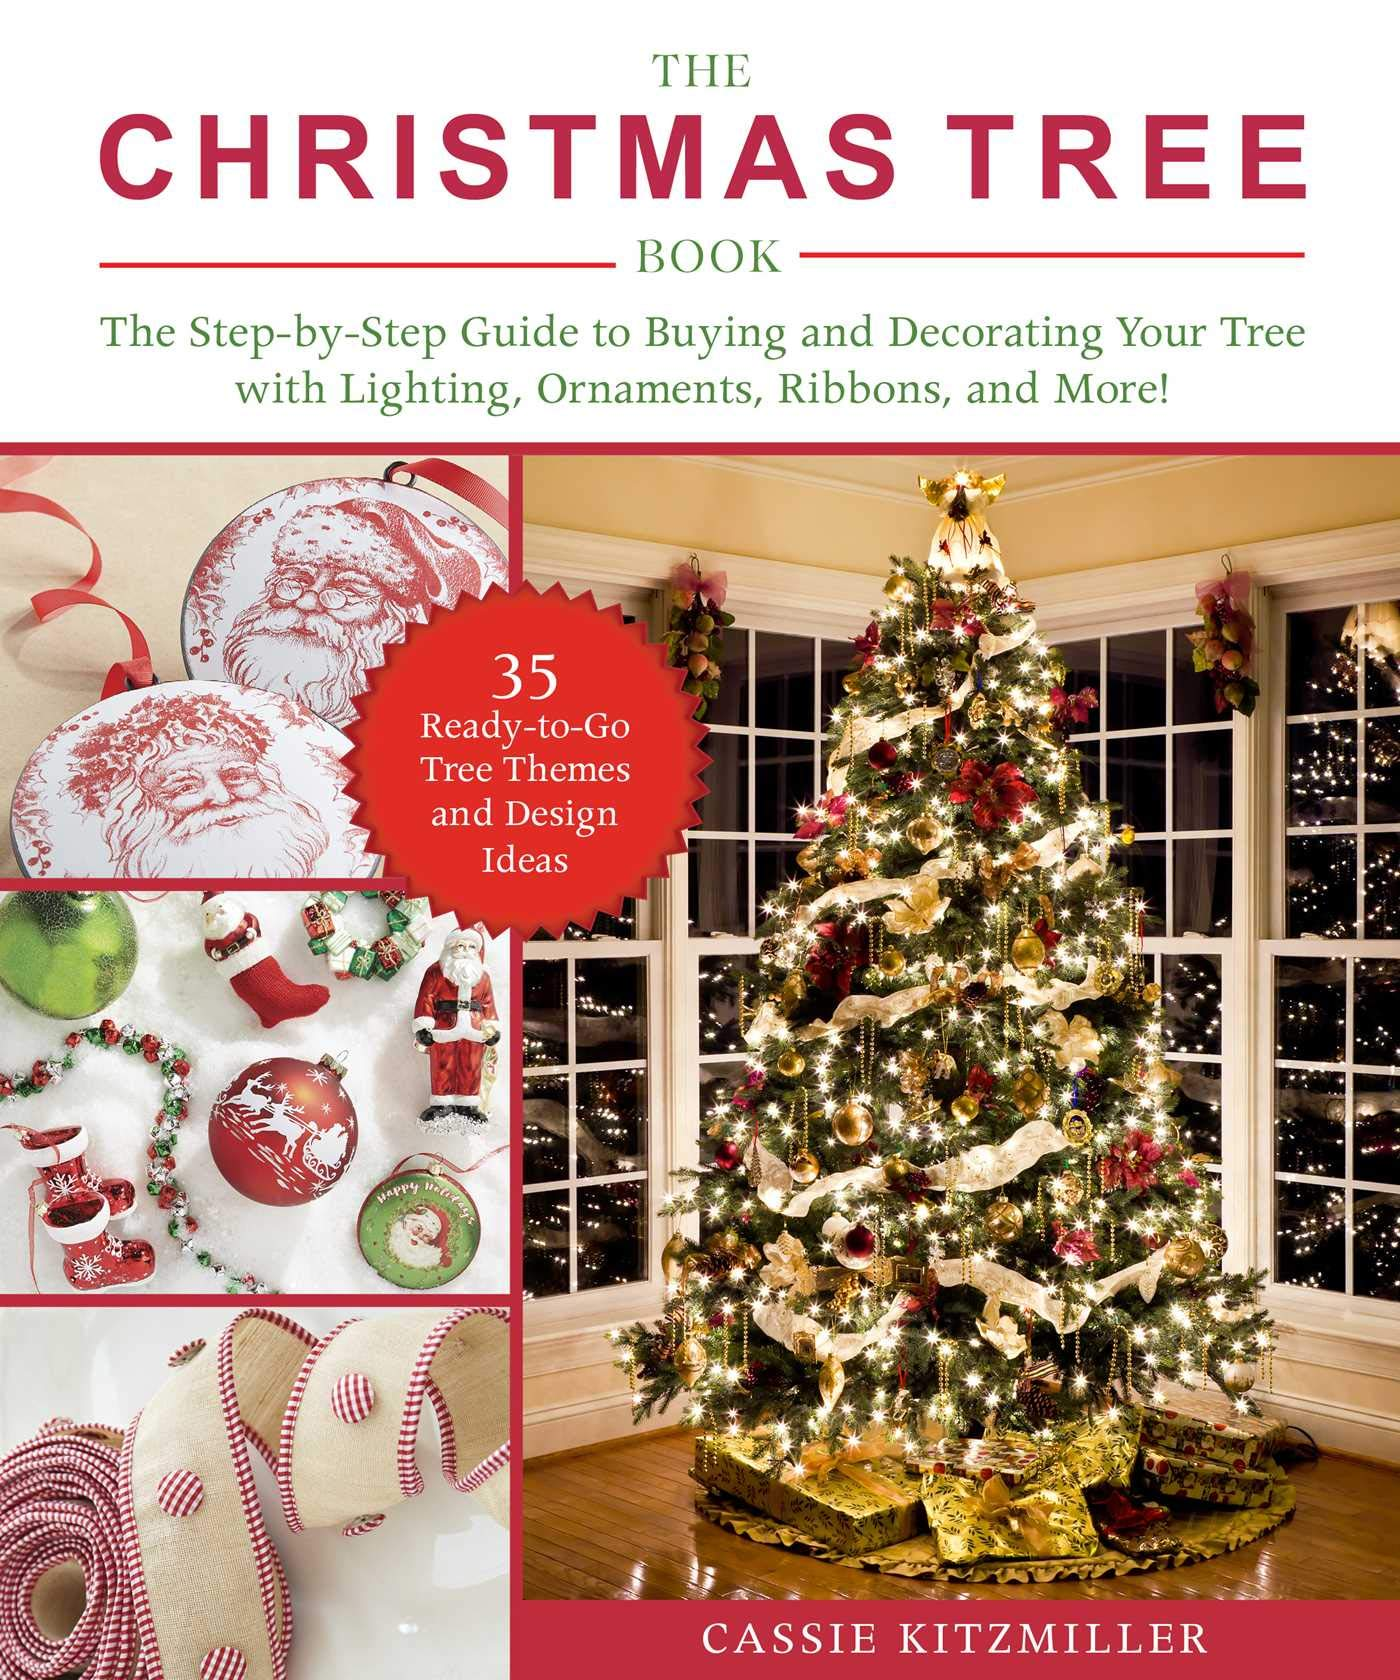 The Christmas Tree Book The Step By Step Guide To Buying And Decorating Your Tree With Lighting Ornaments Ribbons And More Amazon Co Uk Kitzmiller Cassie 9781510752108 Books